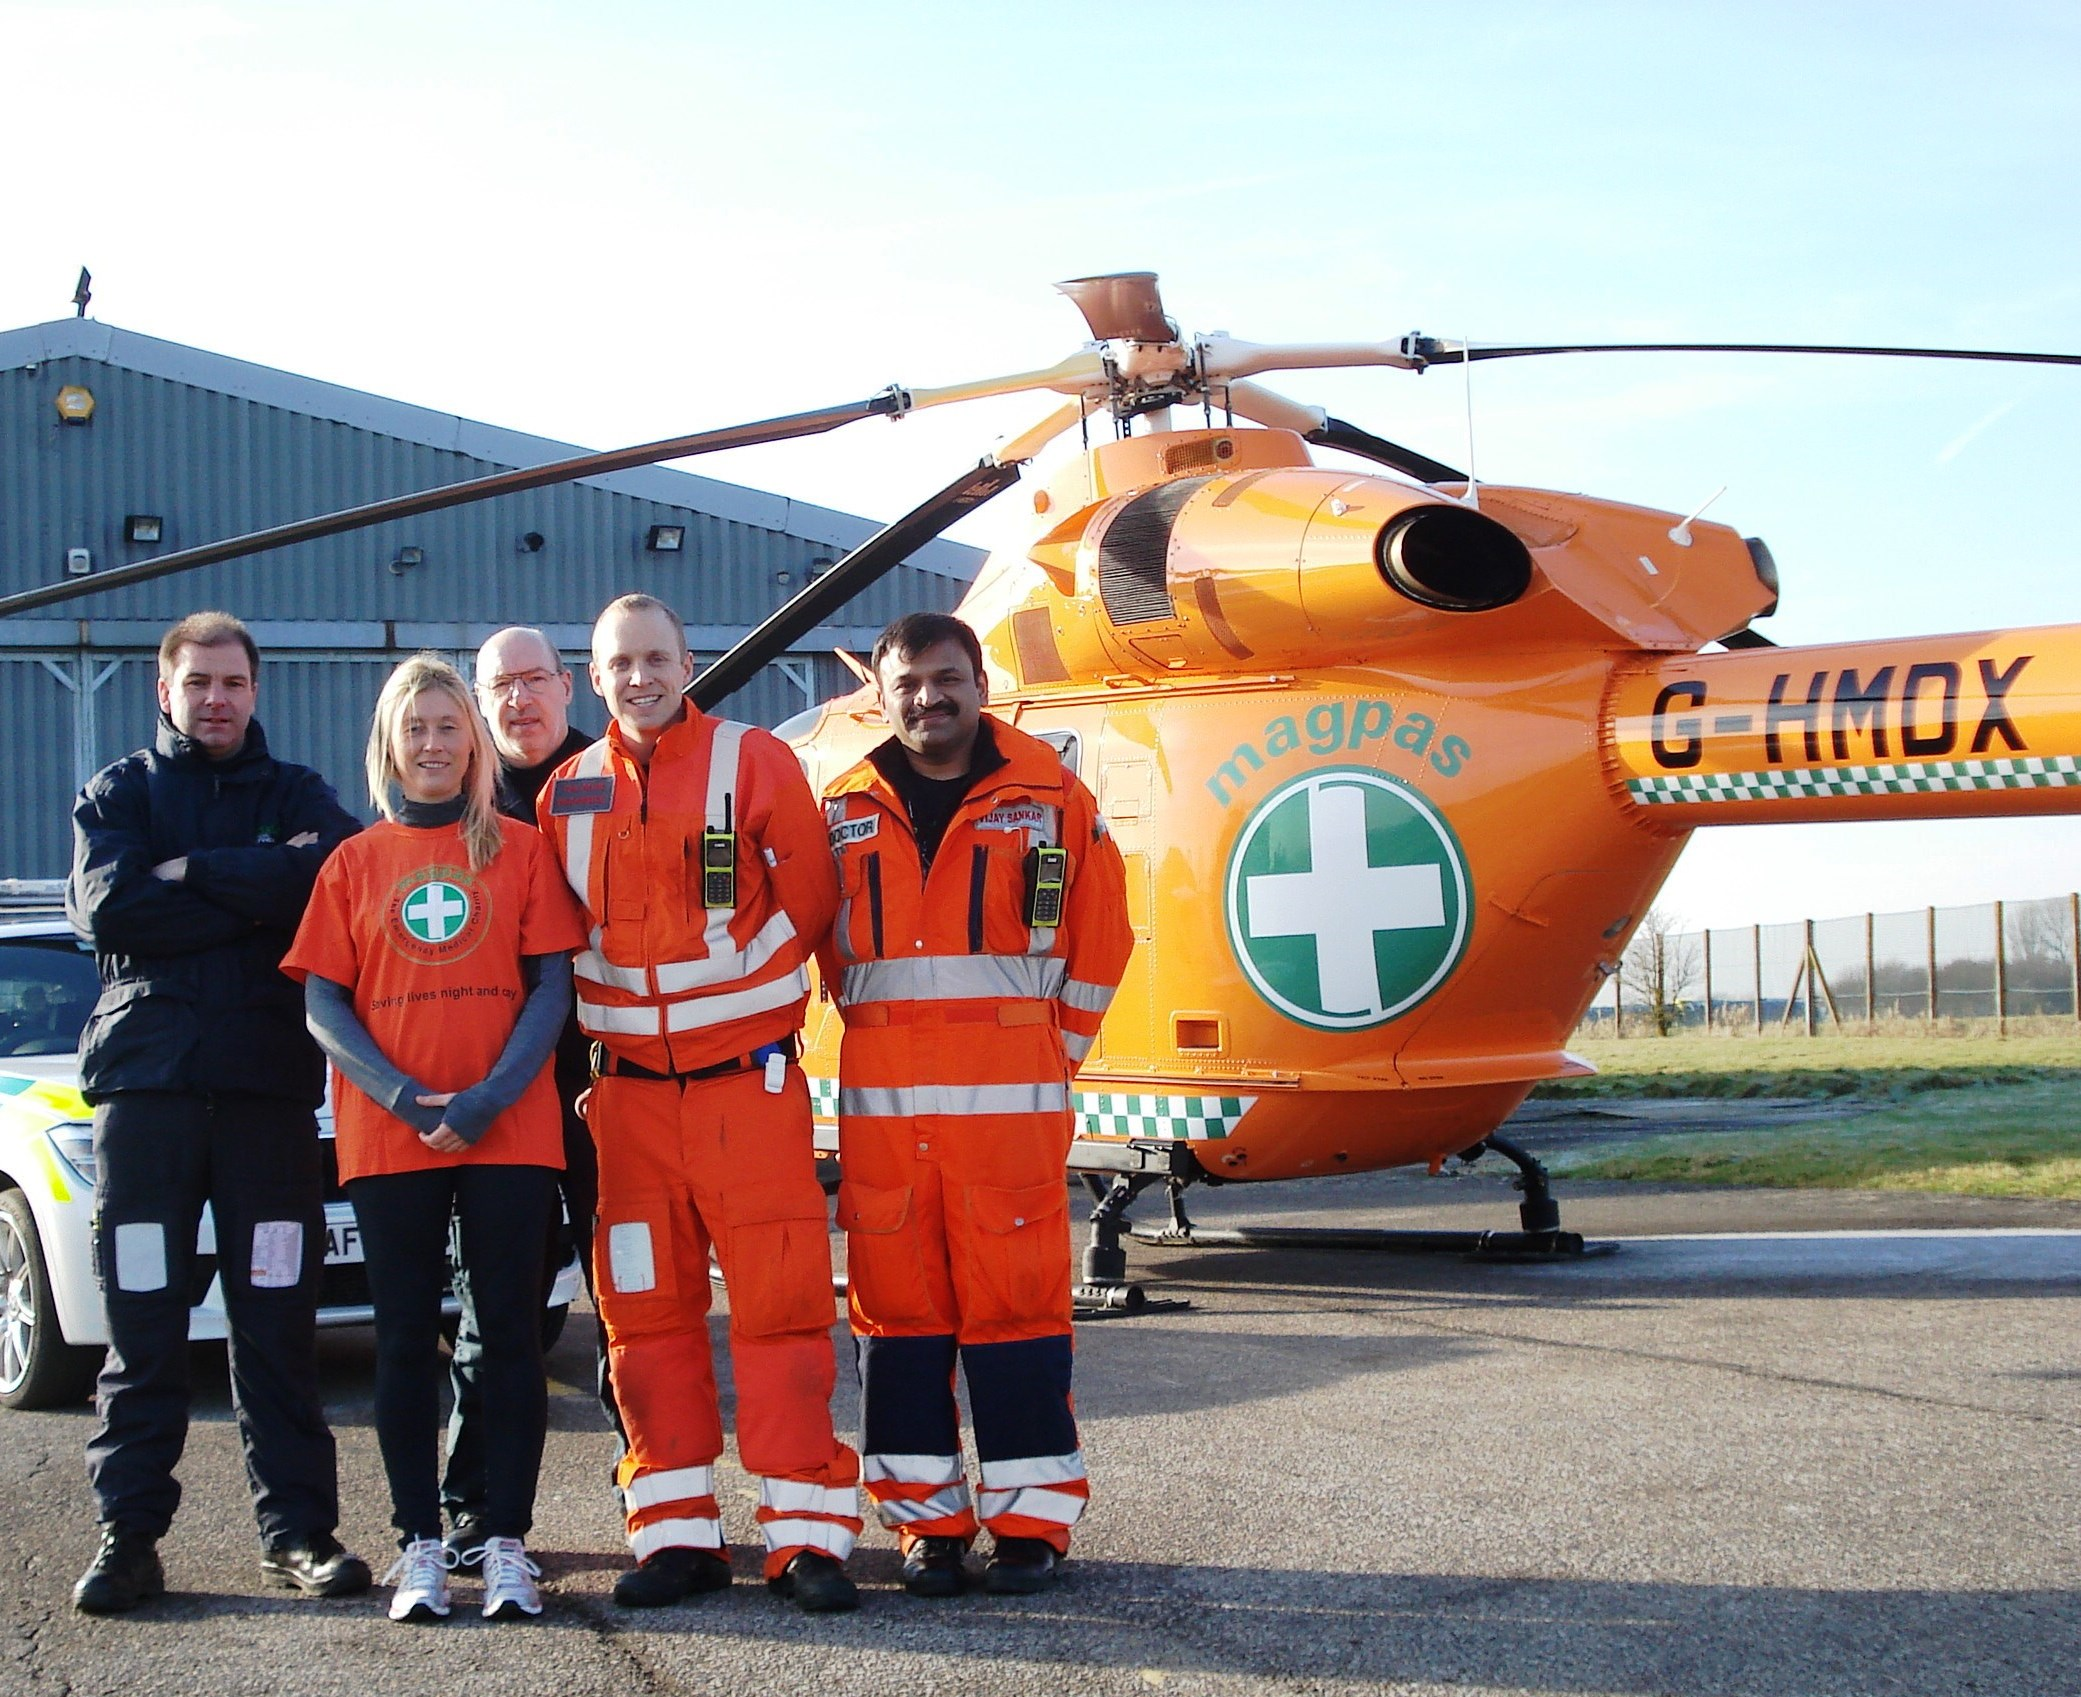 Cat-with-the-Magpas-Air-Ambulance-medical-team.jpg